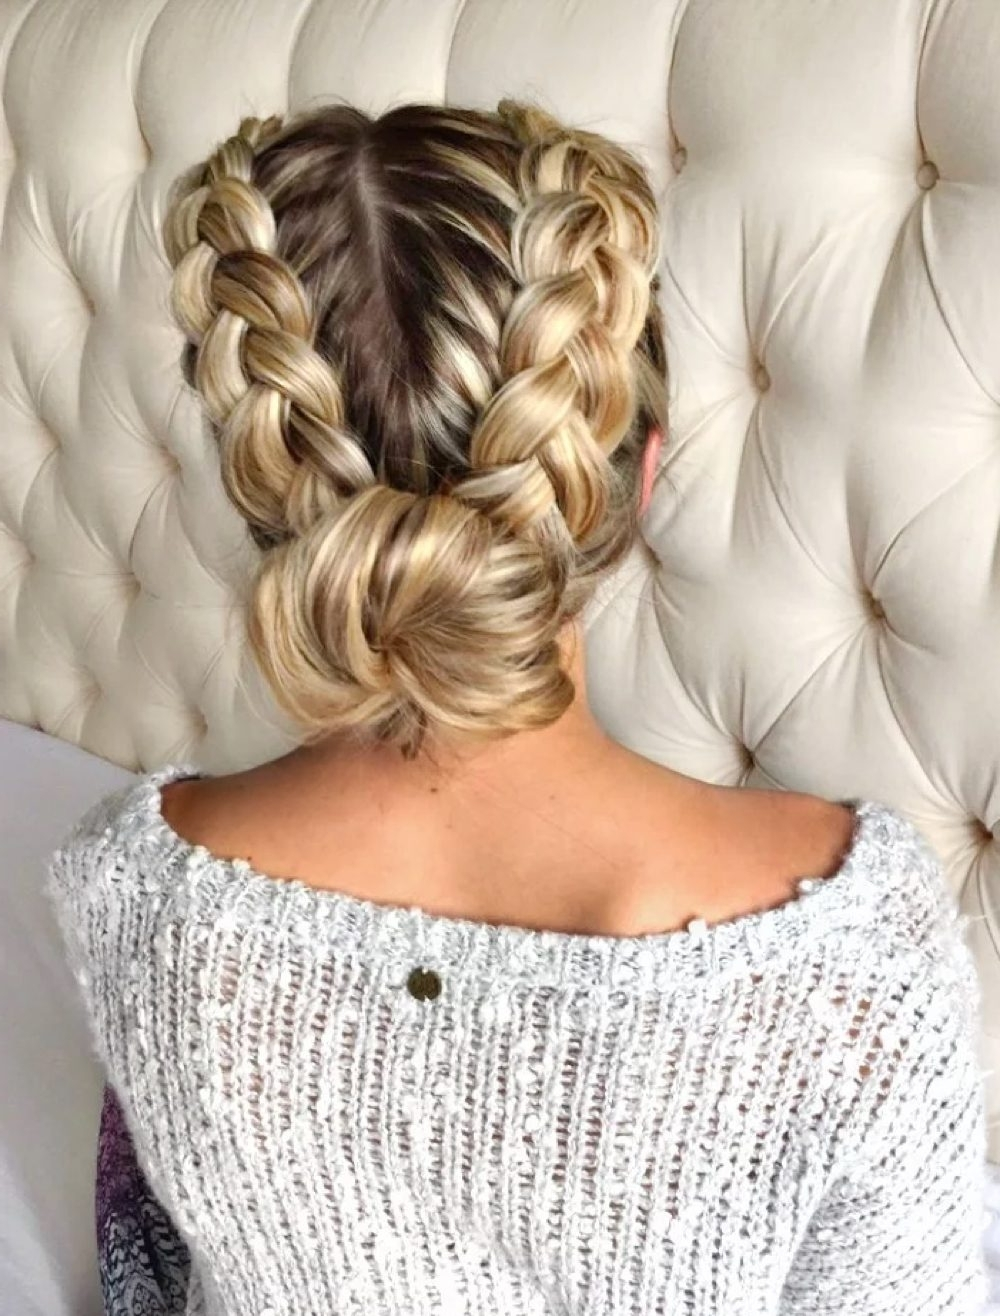 28 Gorgeous Braided Updo Ideas For 2018 Within 2018 Loosely Braided Hairstyles (View 2 of 15)